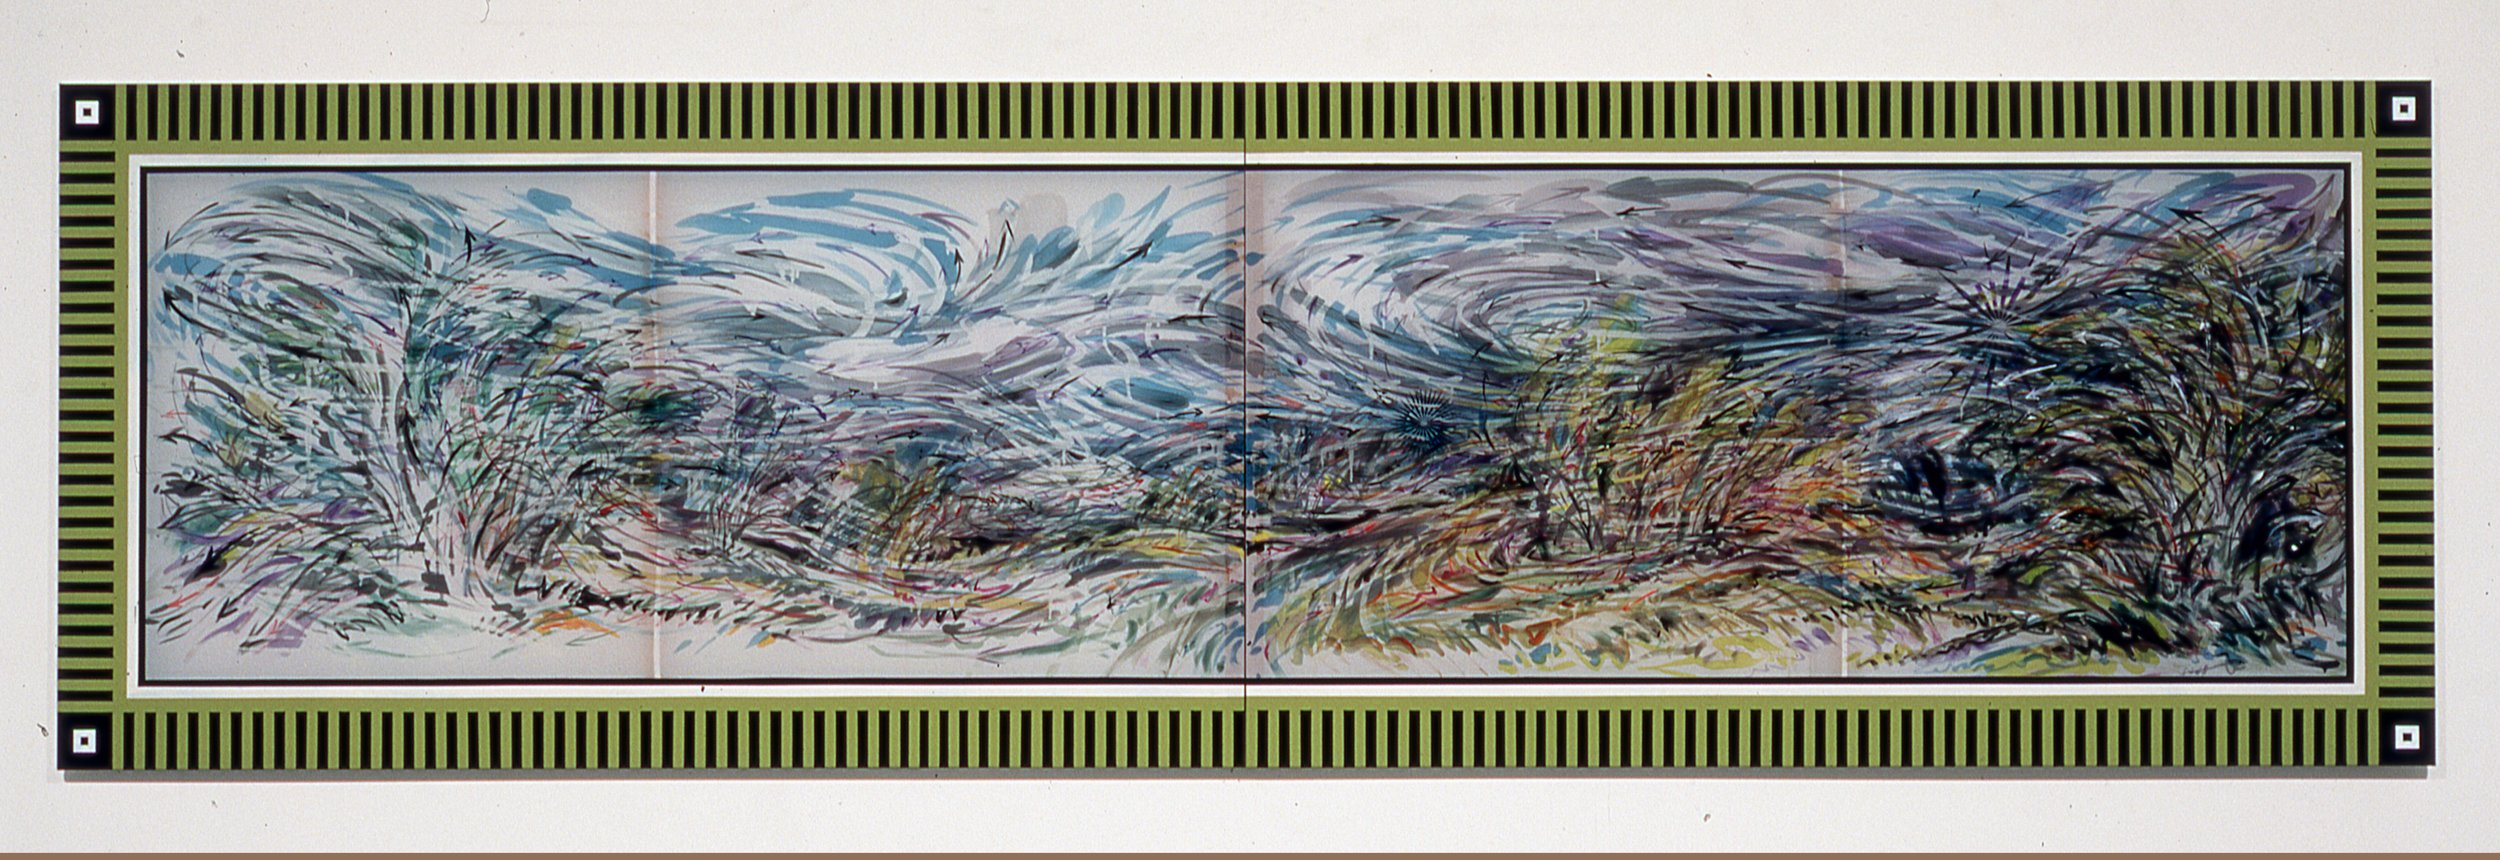 "Wind Swept ,  2005  Ink, silk dye and acrylic on silk  40"" x 127 1/4"" two panels"